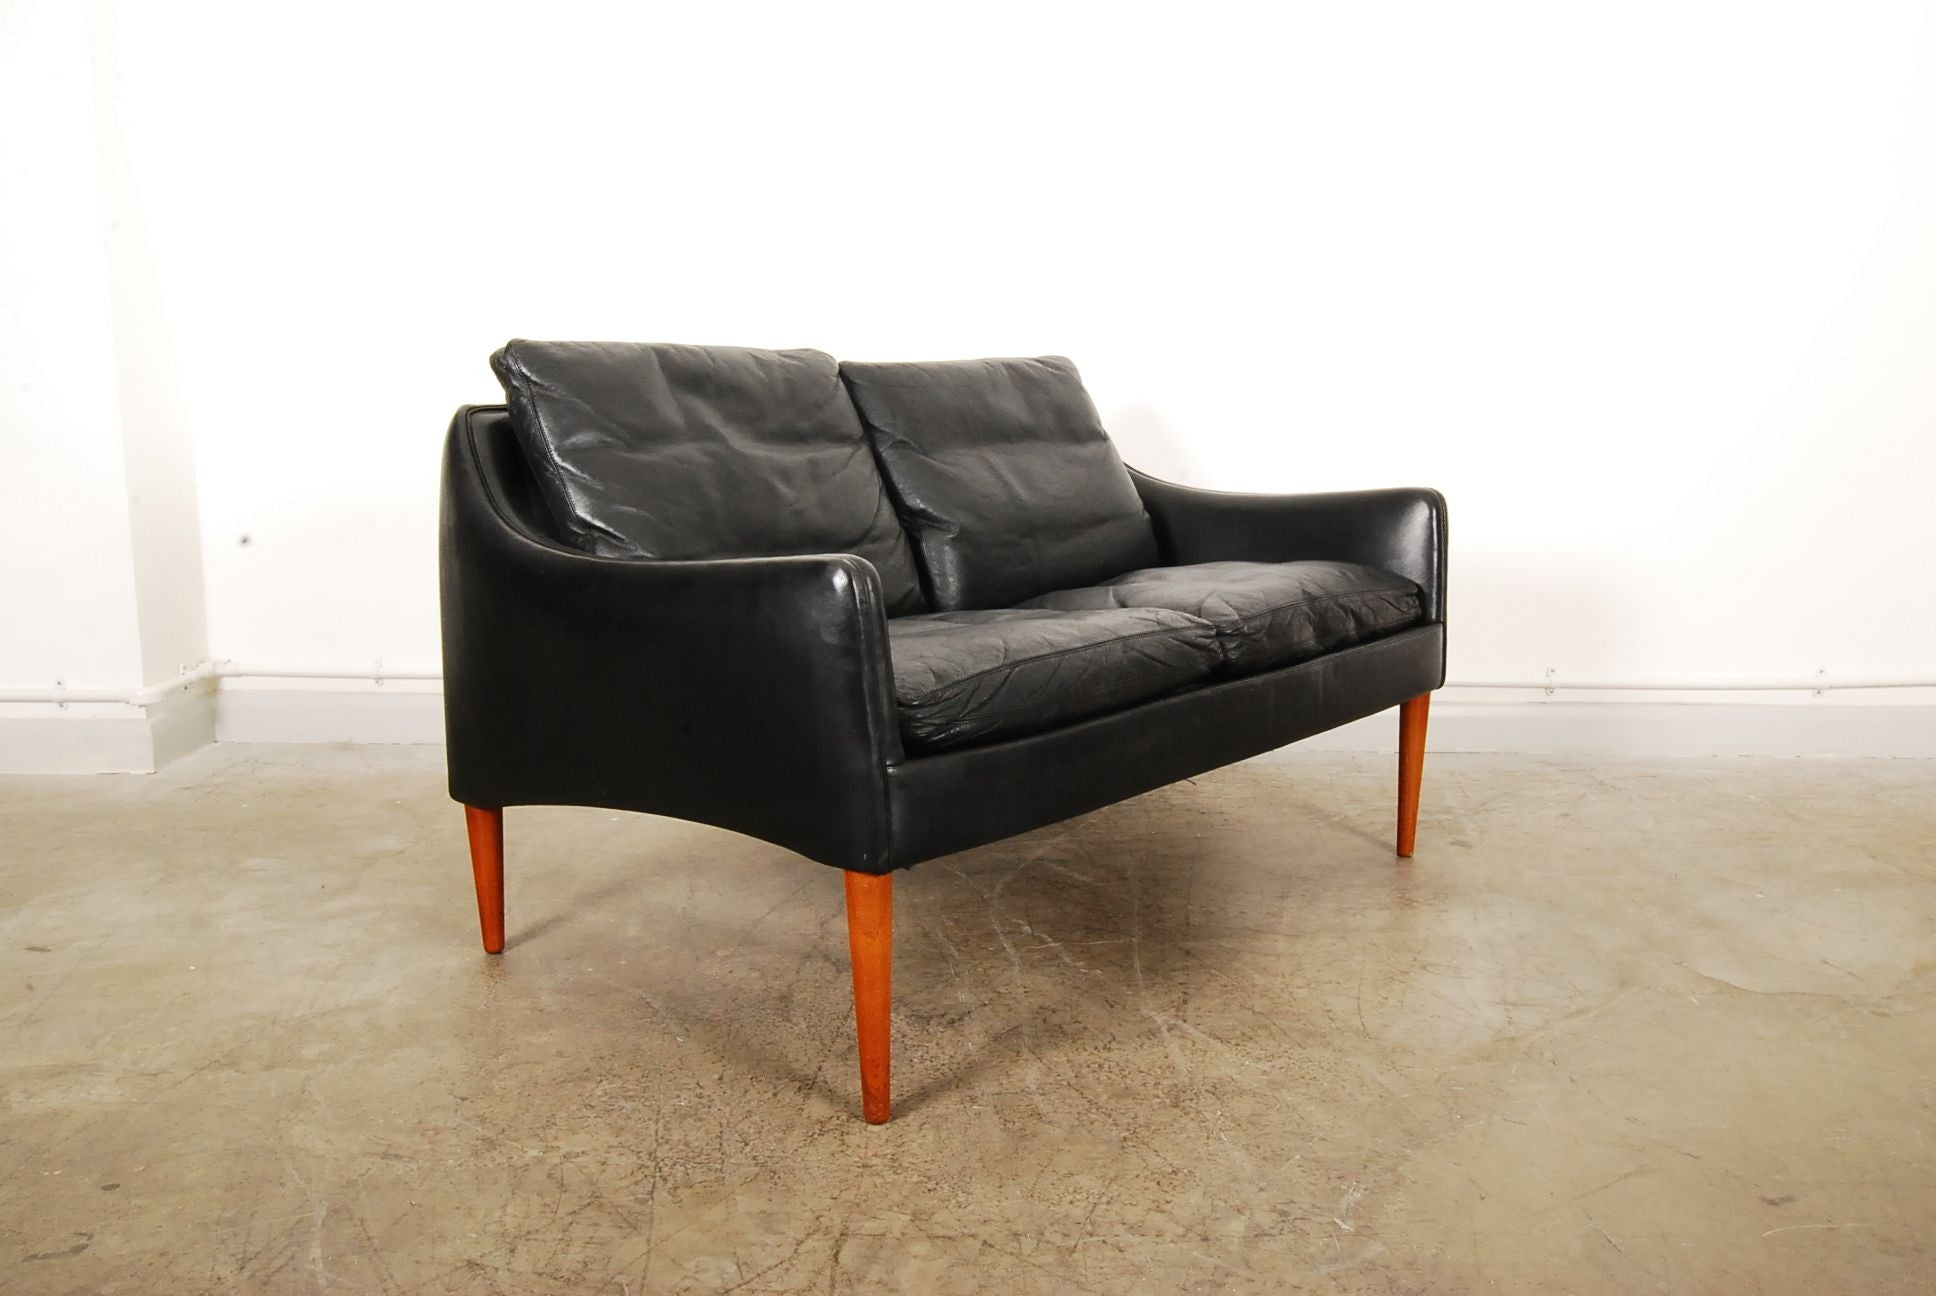 Two seater by Hans Olsen